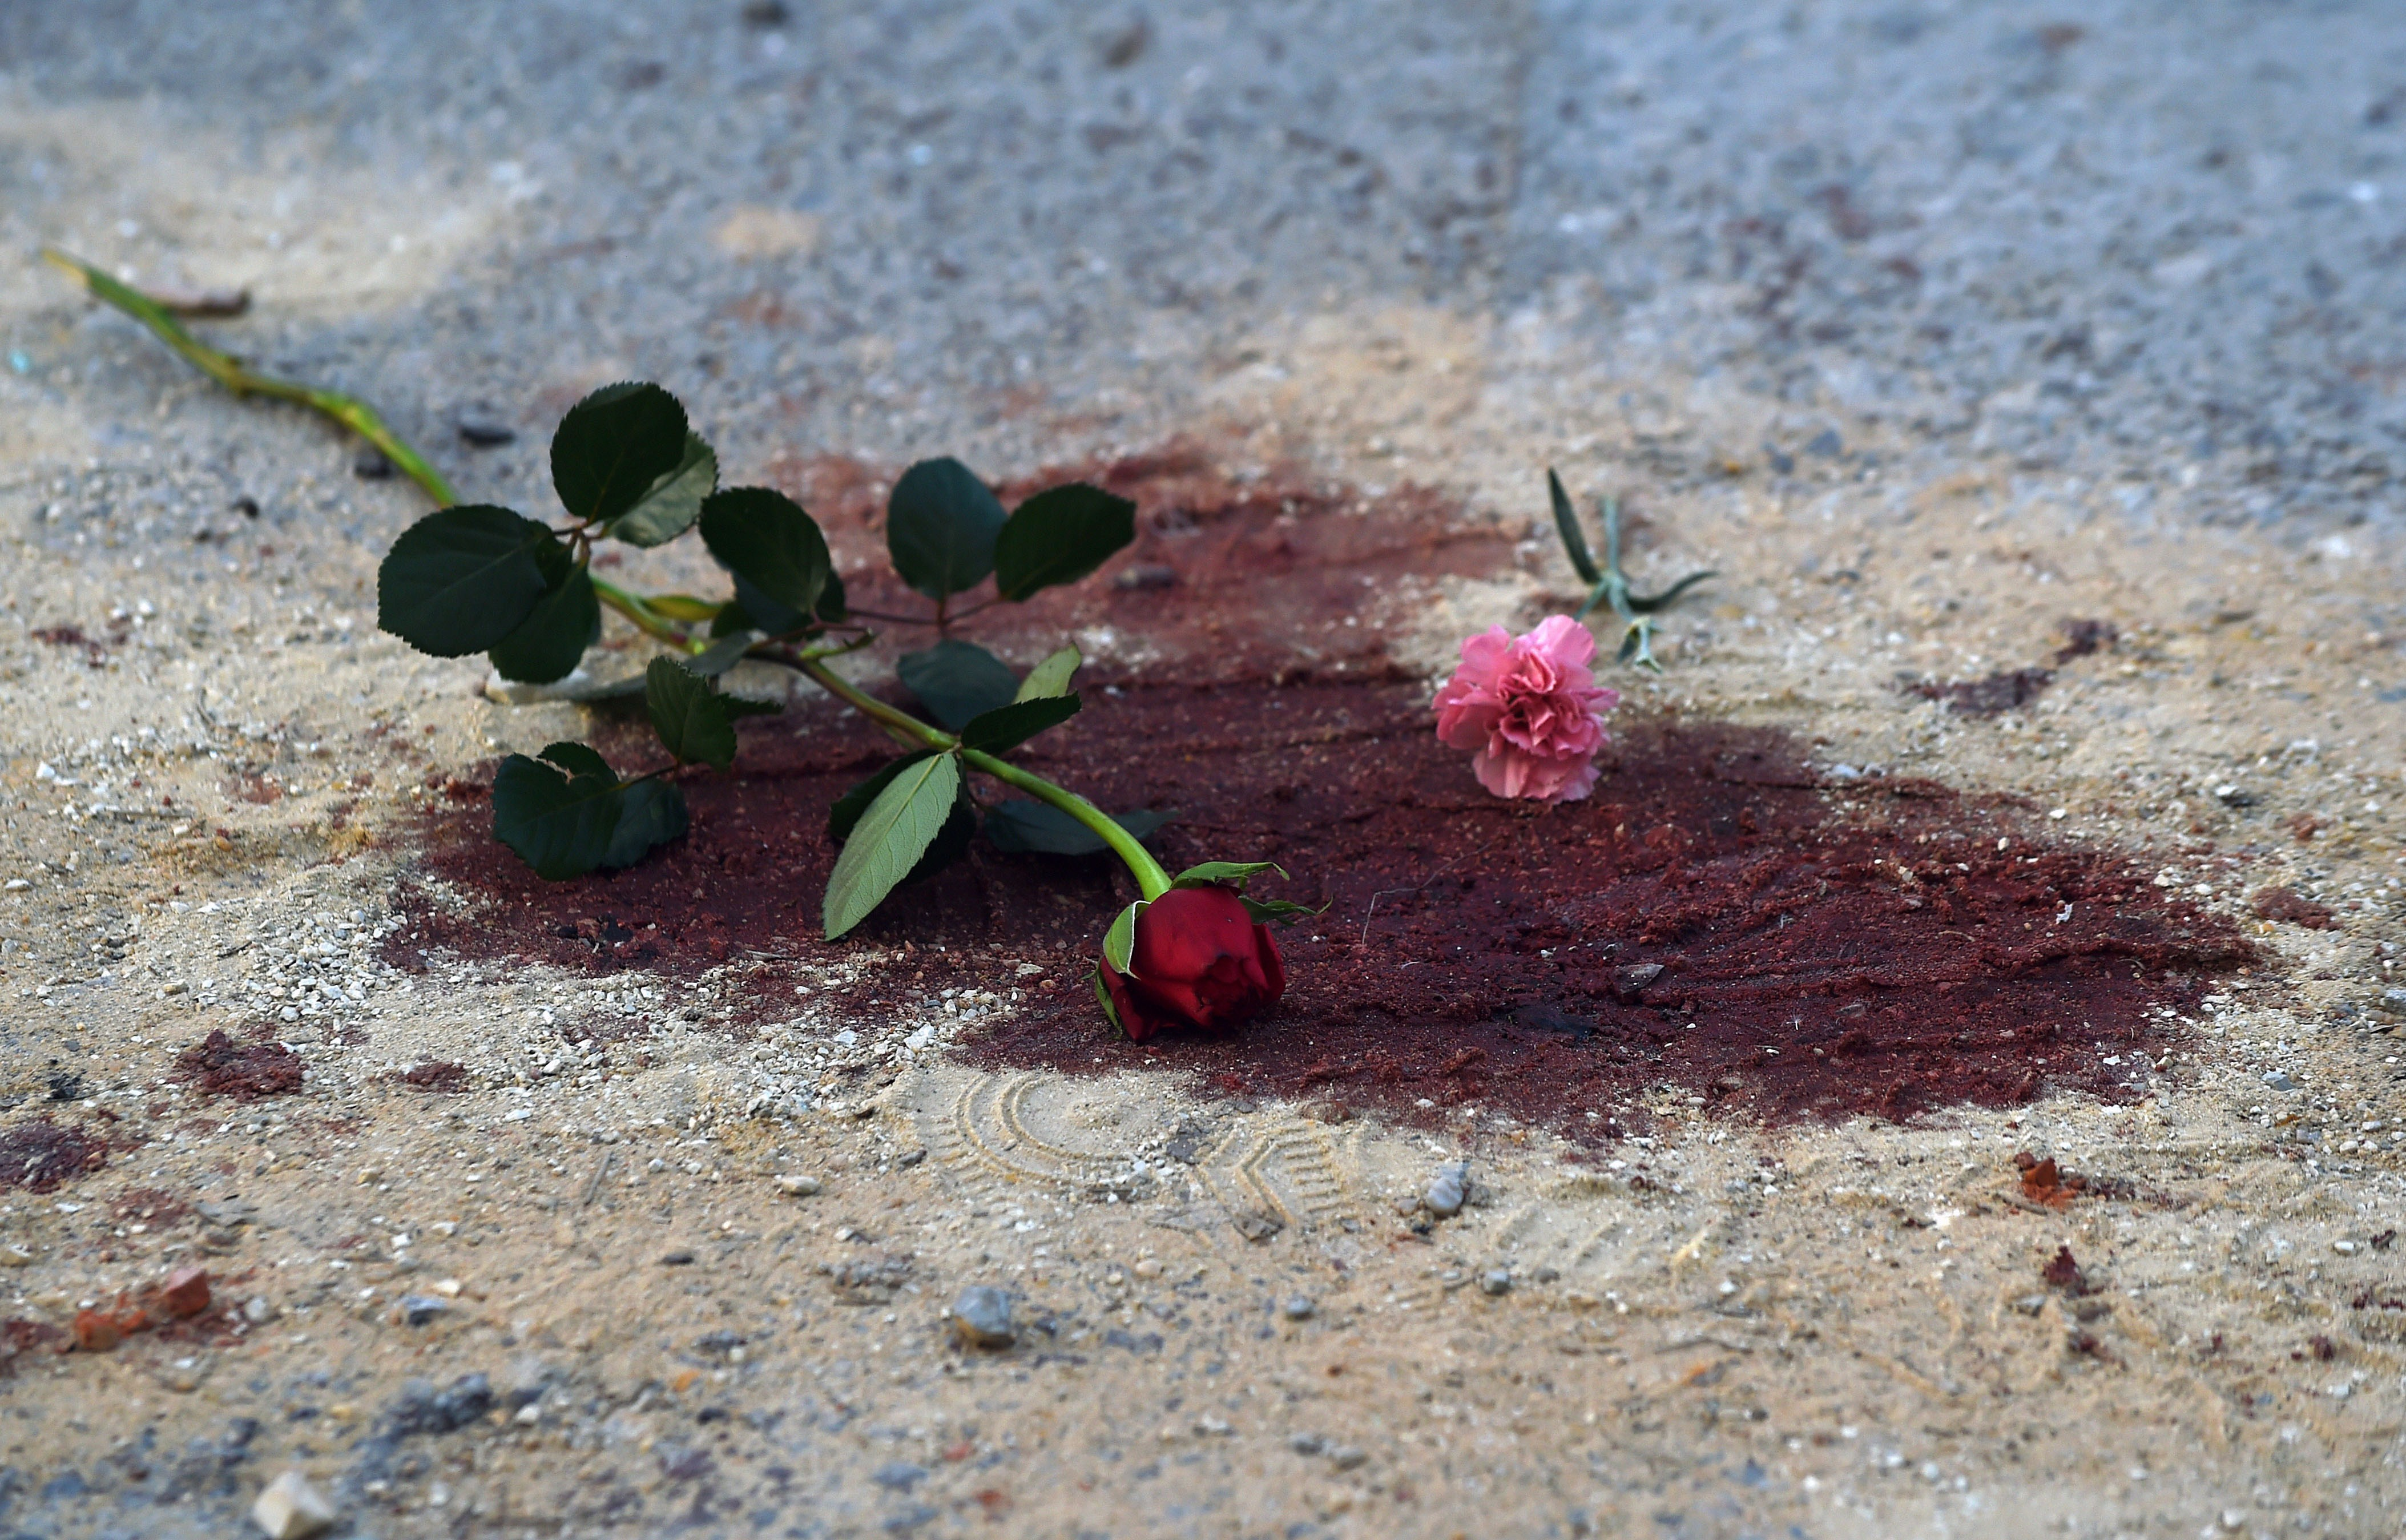 "Roses are seen on bloodstains in front of the National Bardo Museum in Tunis on March 19, 2015 during a demonstration in solidarity with the victims of an attack on the museum the previous day killing 21 people. Tunisia has vowed to wage ""a merciless war against terrorism"" after the carnage at its national museum but it has struggled to draw up a strategy to counter the jihadist threat. AFP PHOTO /FADEL SENNA        (Photo credit should read FADEL SENNA/AFP/Getty Images)"